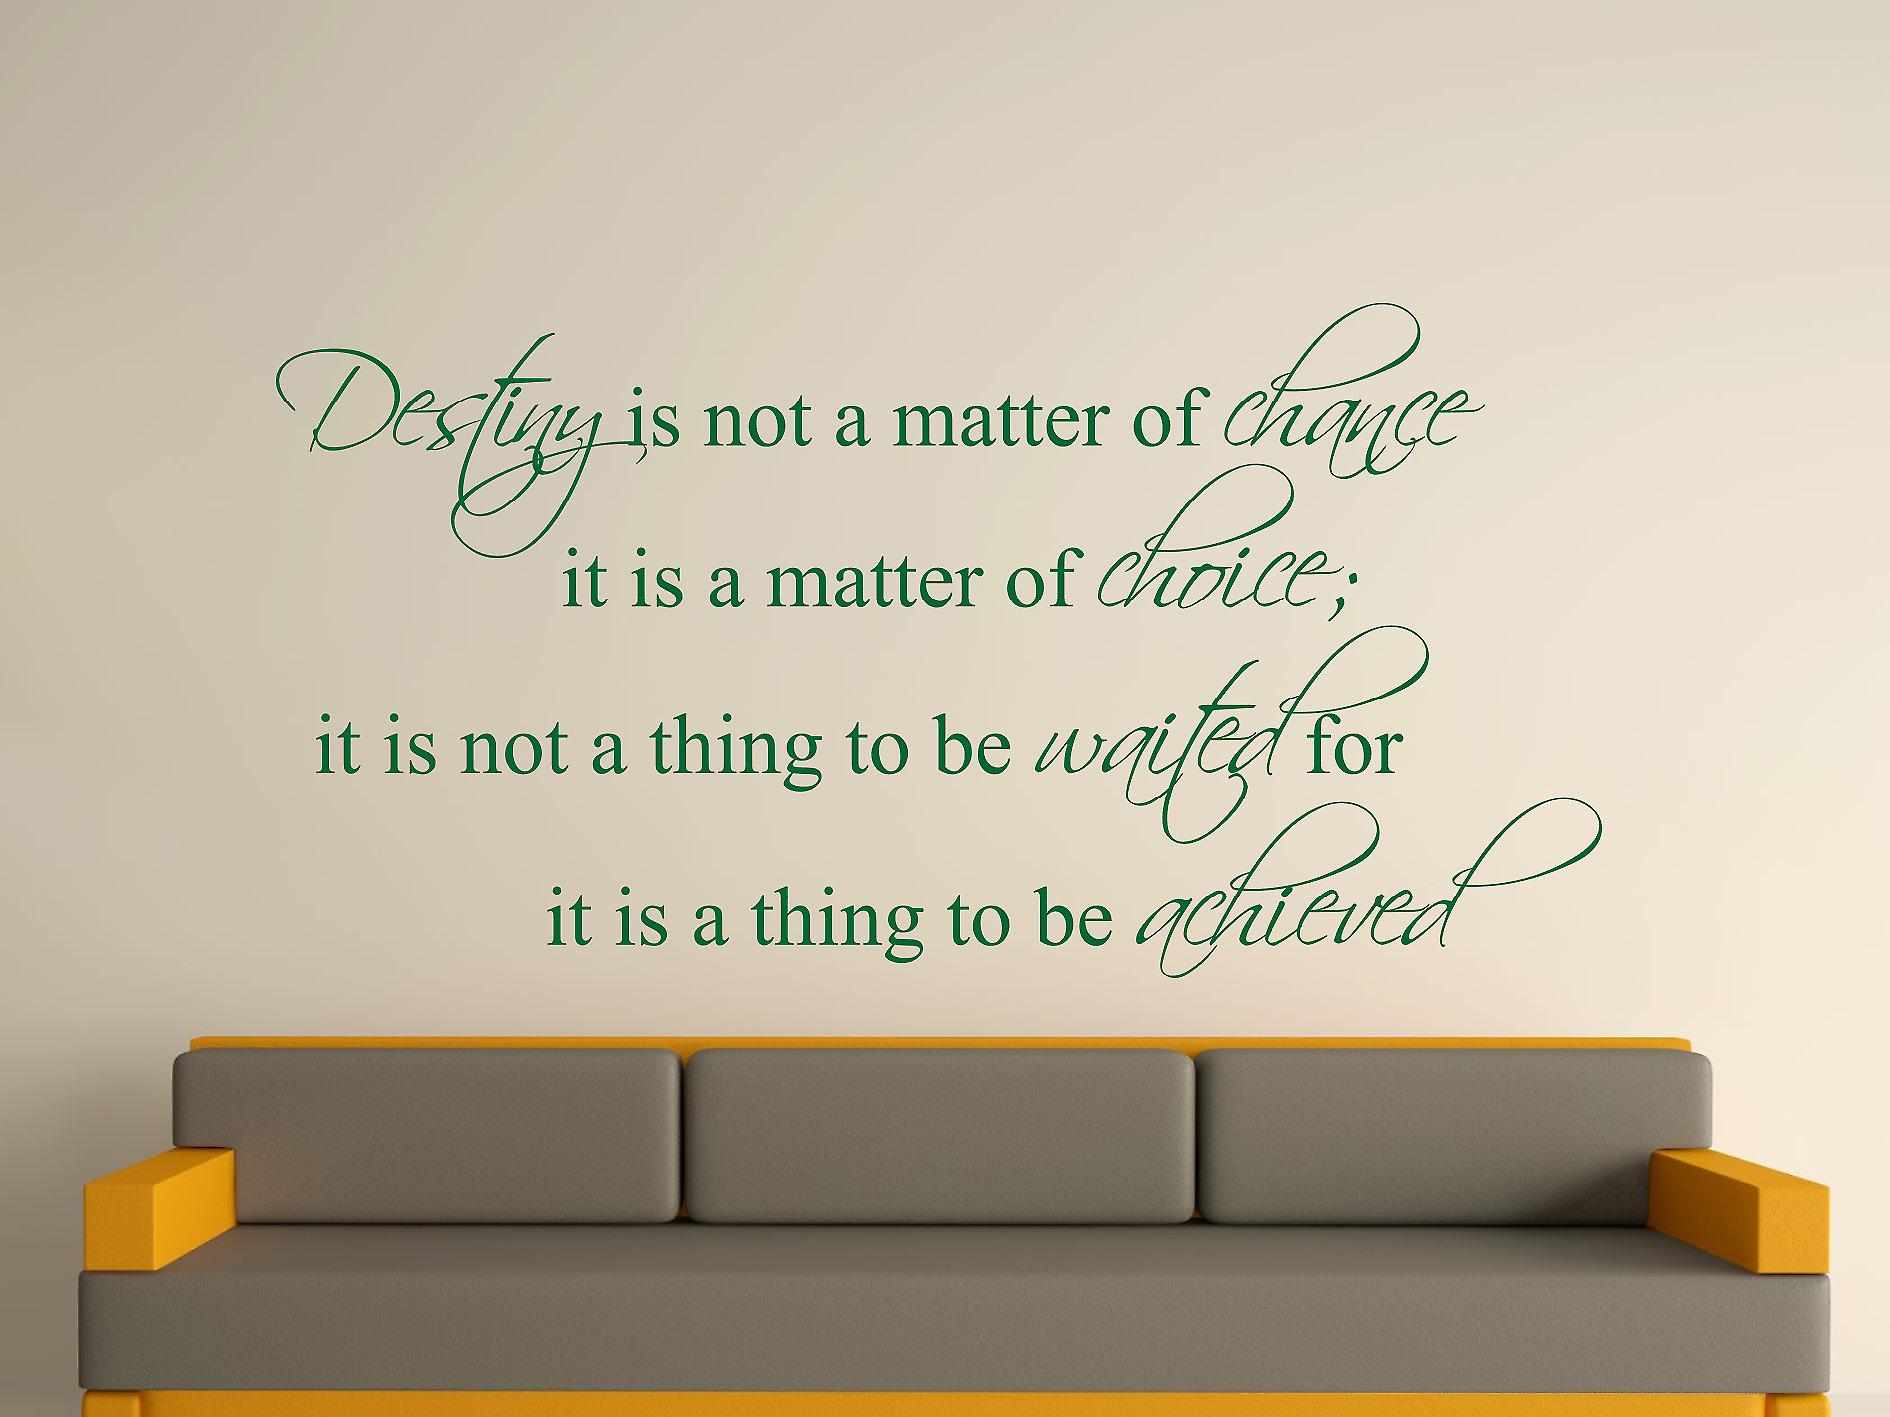 Destiny Is Not A Matter of Chance Wall Art Sticker - Racing Green